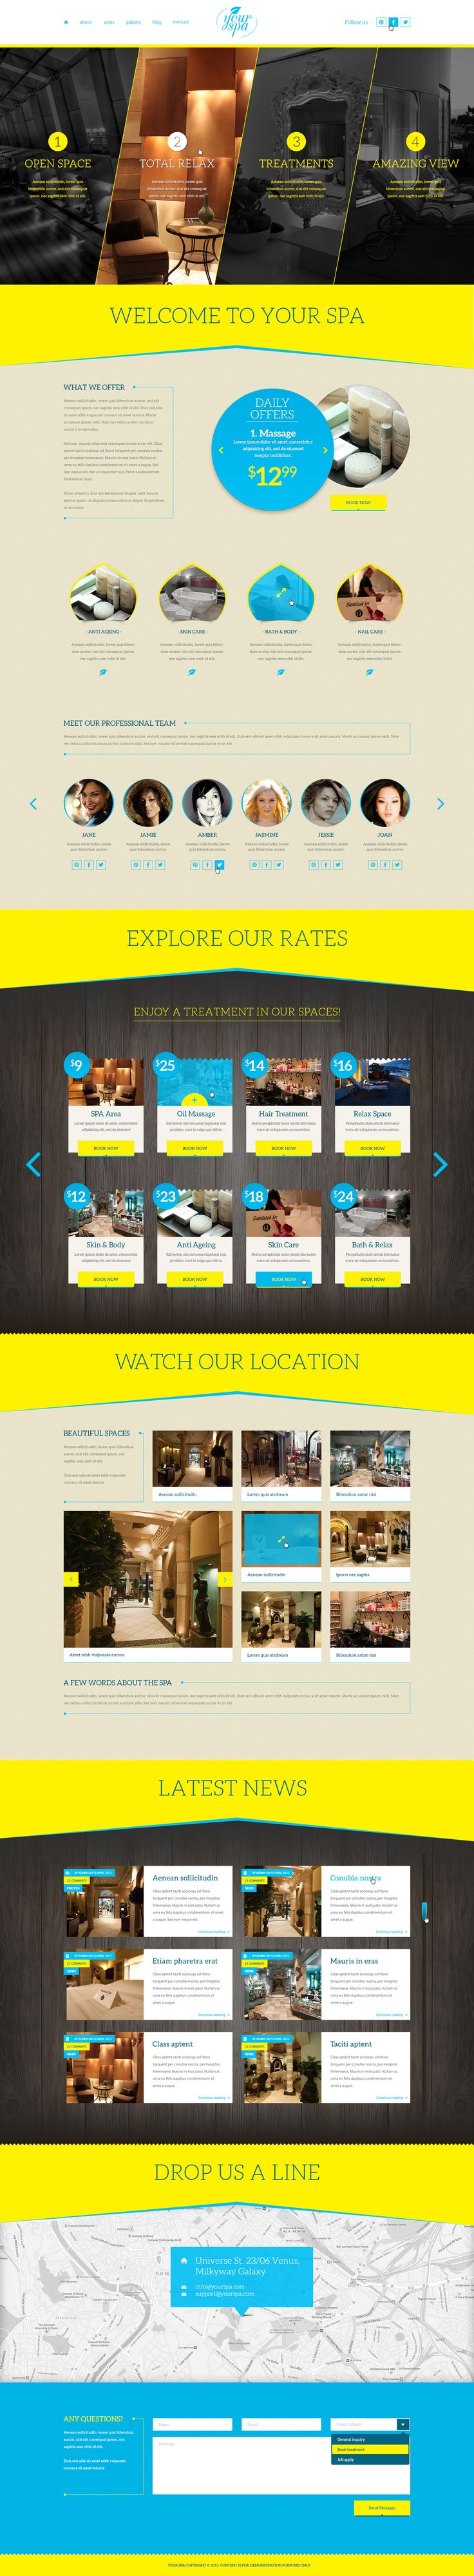 Your Spa – Health/Beauty One Page PSD Template design. Thought for health and beauty category sites. It has a full potential to be your next one page site for your client. All shapes are 100% customizable with font icons that make the design retina ready.